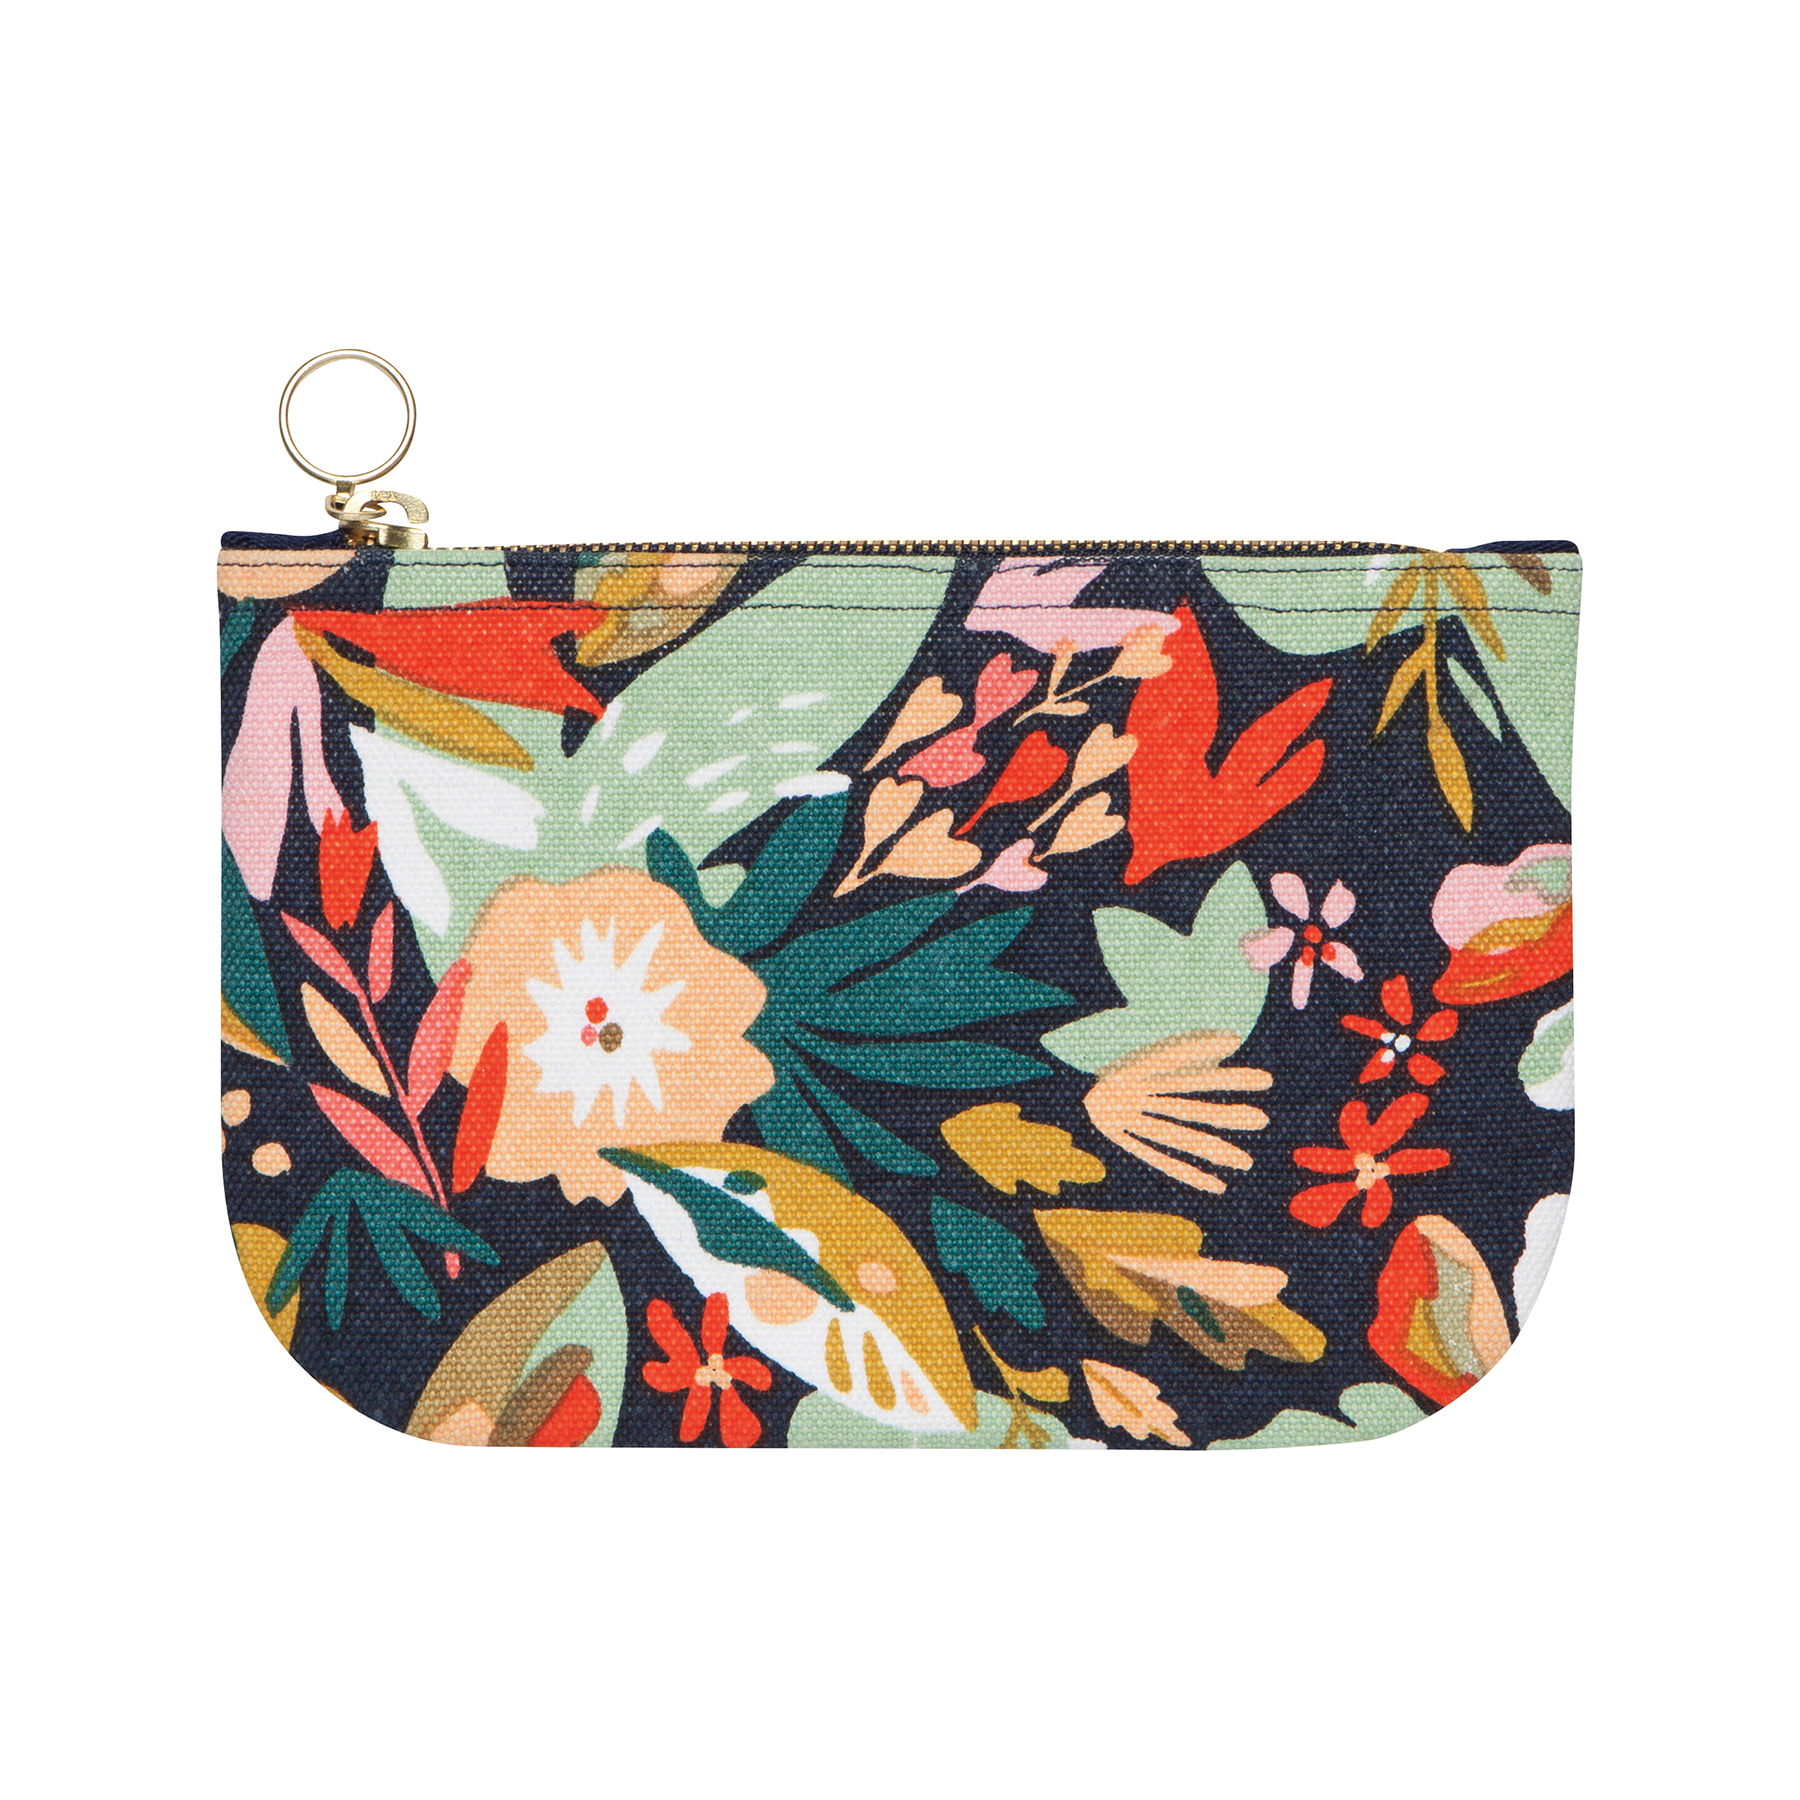 Zipper Pouch Small - Superbloom